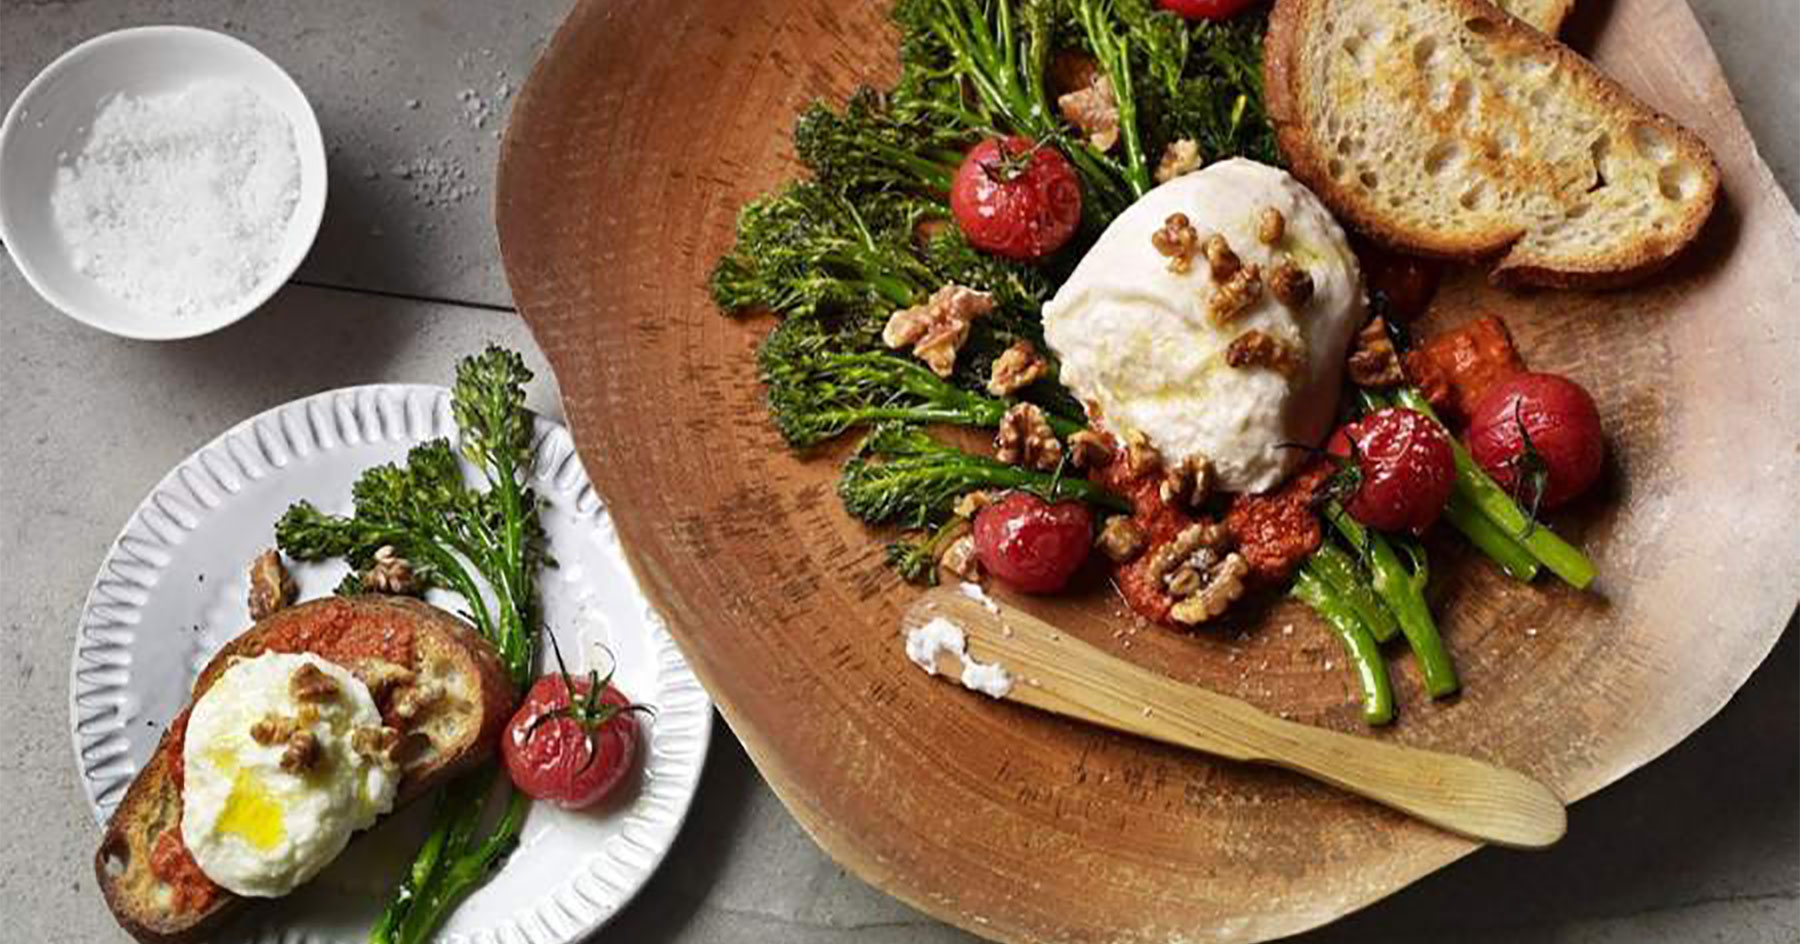 Burrata with Broccolini